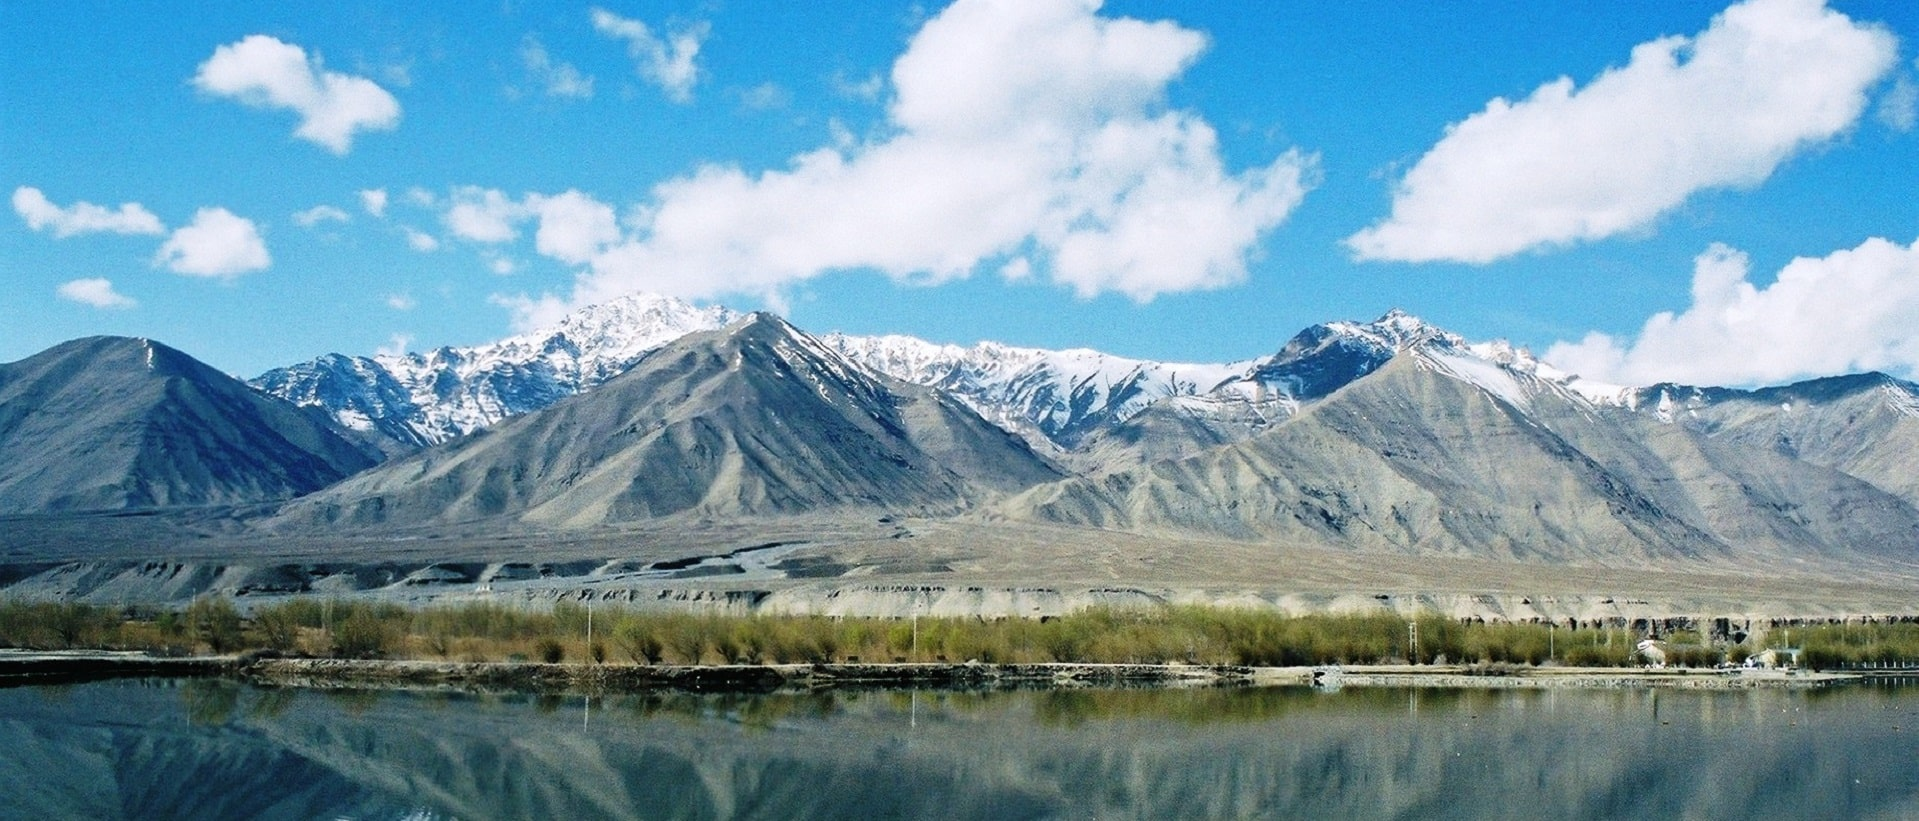 Ladakh Mountain